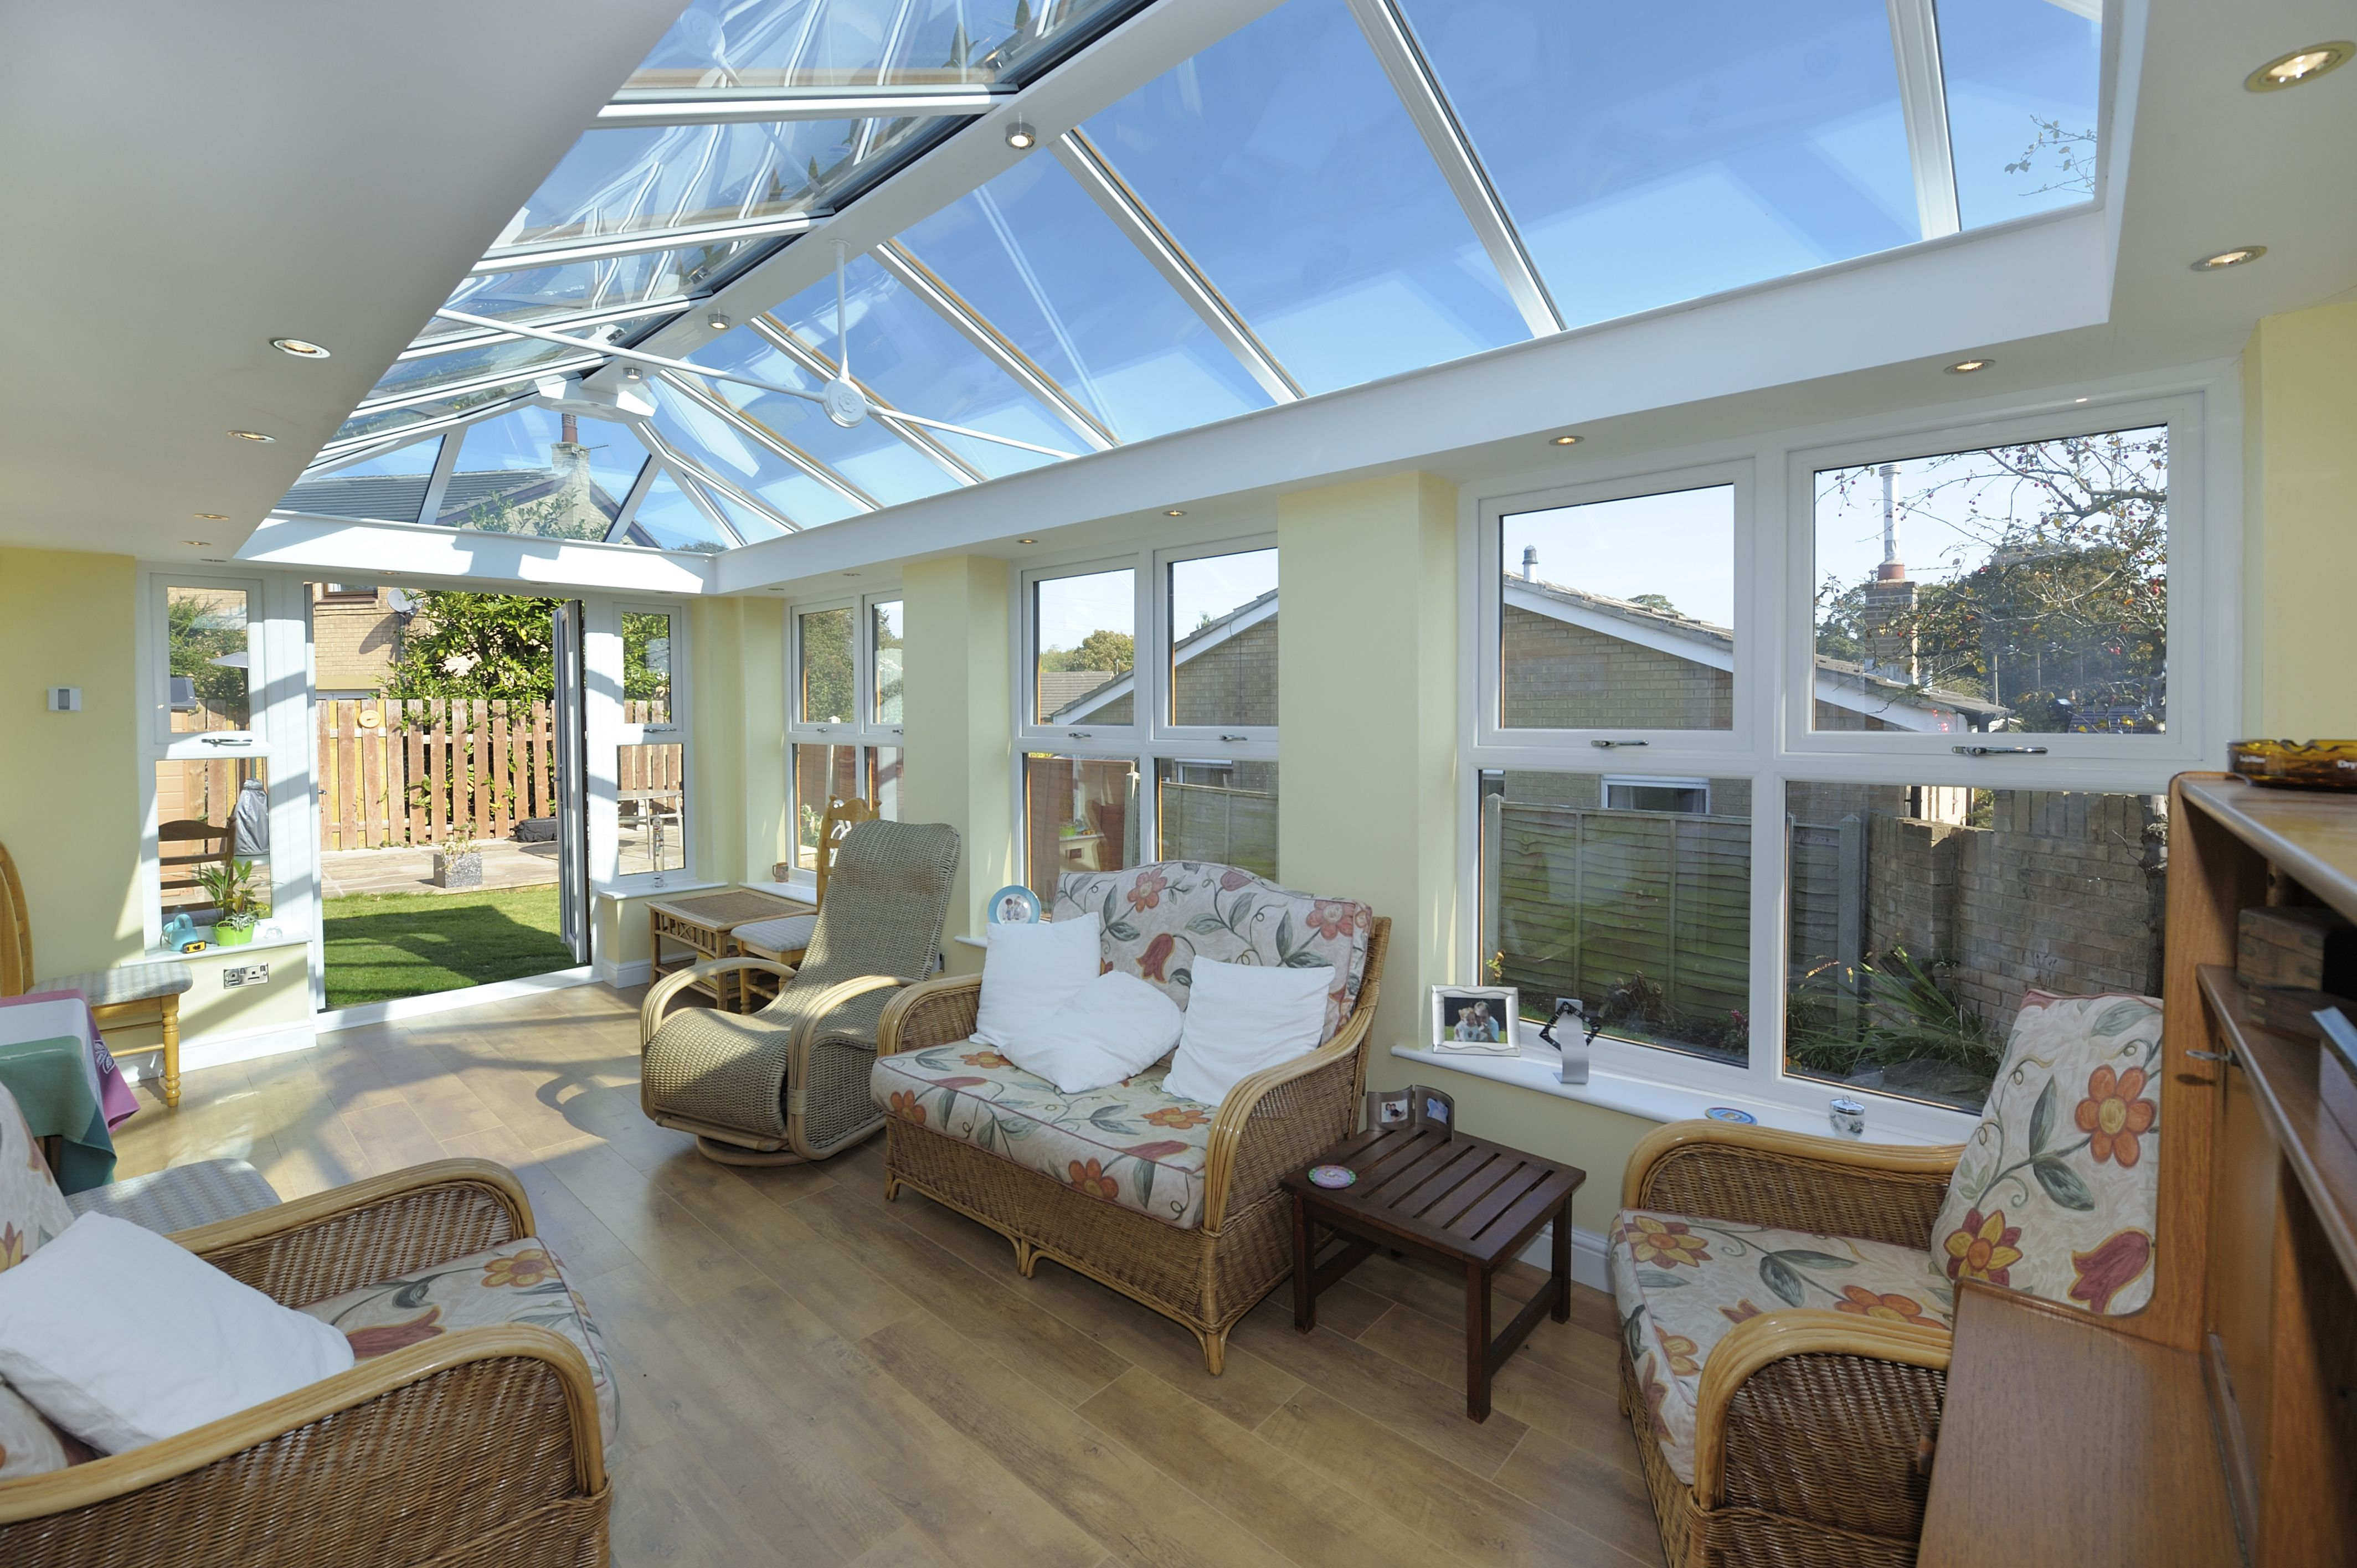 http://www.lifestylewindowsandconservatories.com/products/orangeries/orangery-design/  All our orangery customers want a usable living space all year round but its crucial we work with our customers to understand their individual needs for the orangery build.  #Orangies #UniqueLivingSpace